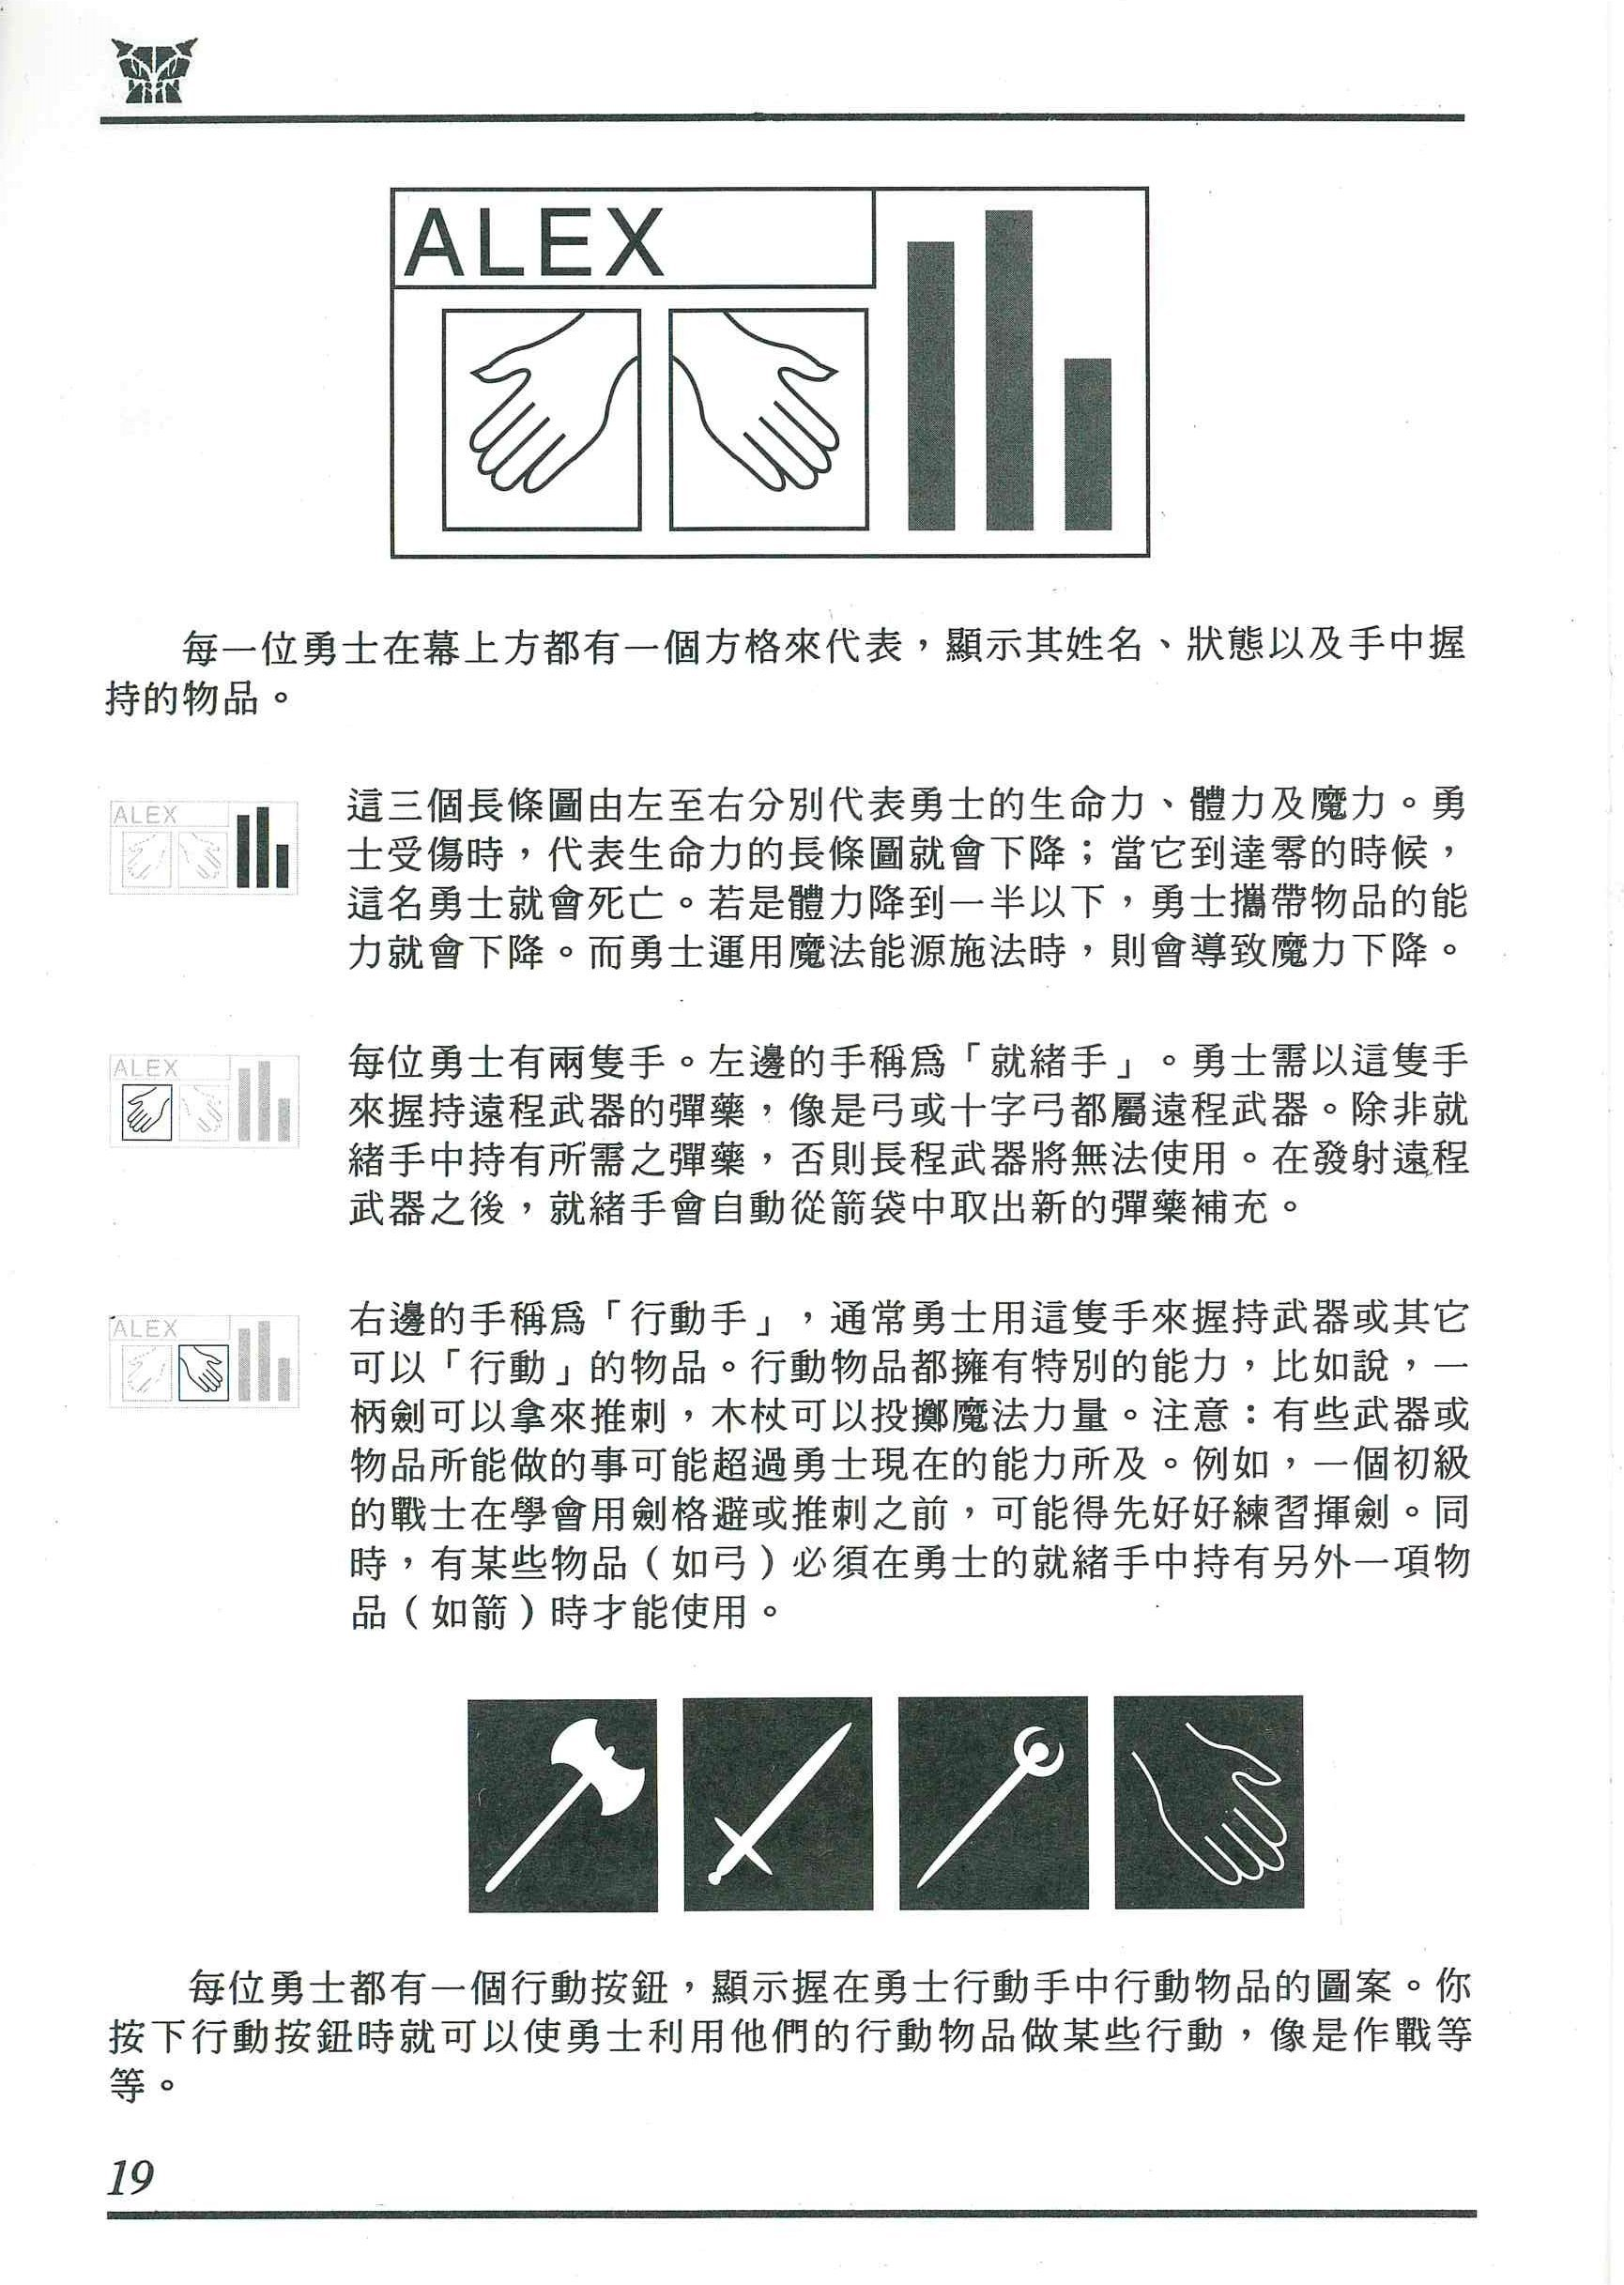 Game - Dungeon Master - CN - PC - Manual - Page 026 - Scan